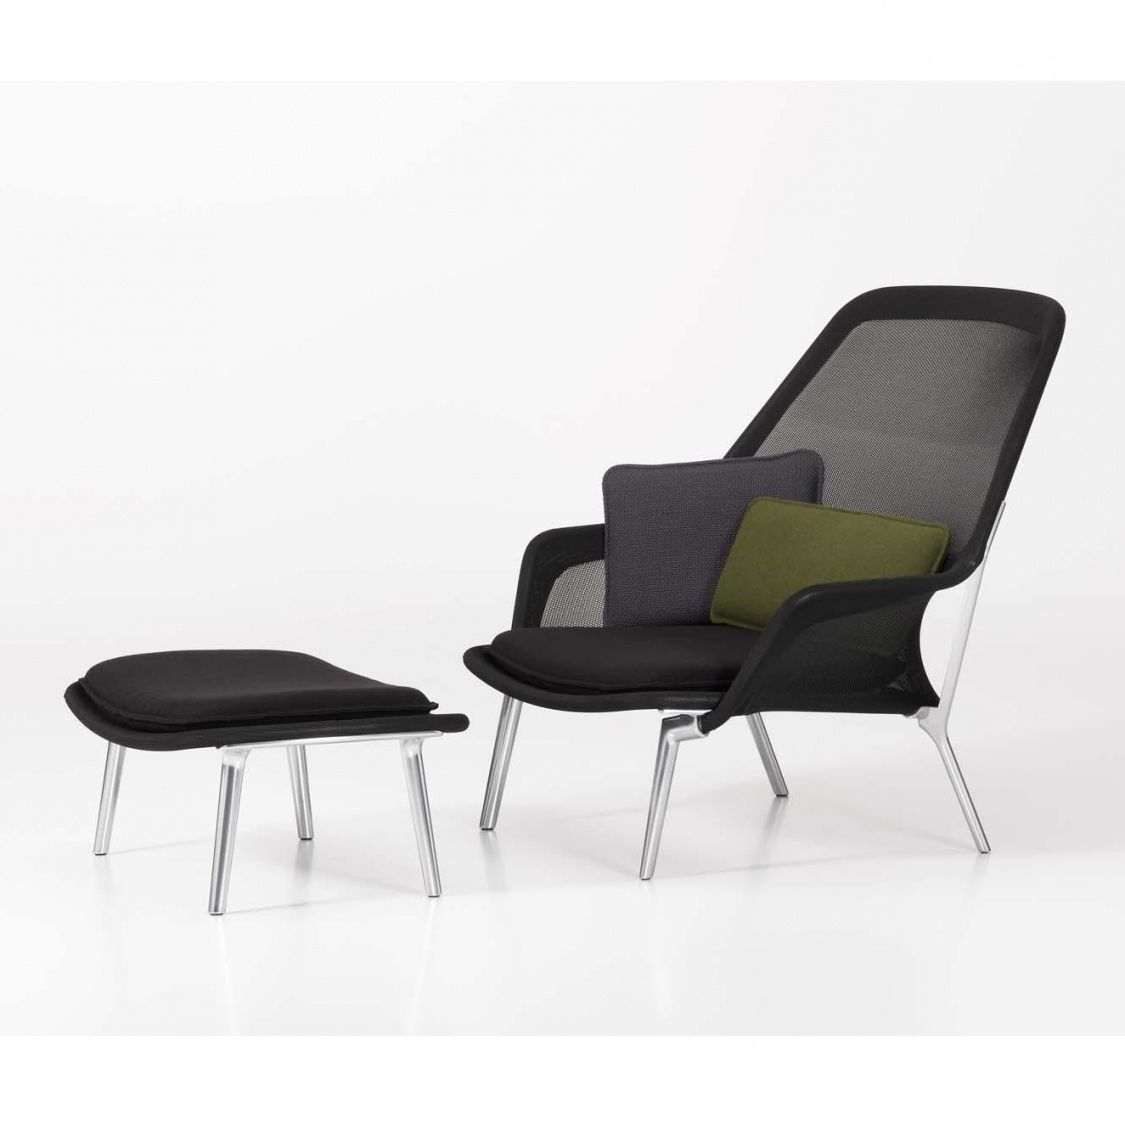 Slow Chair Lounge Chair & Ottoman Vitra